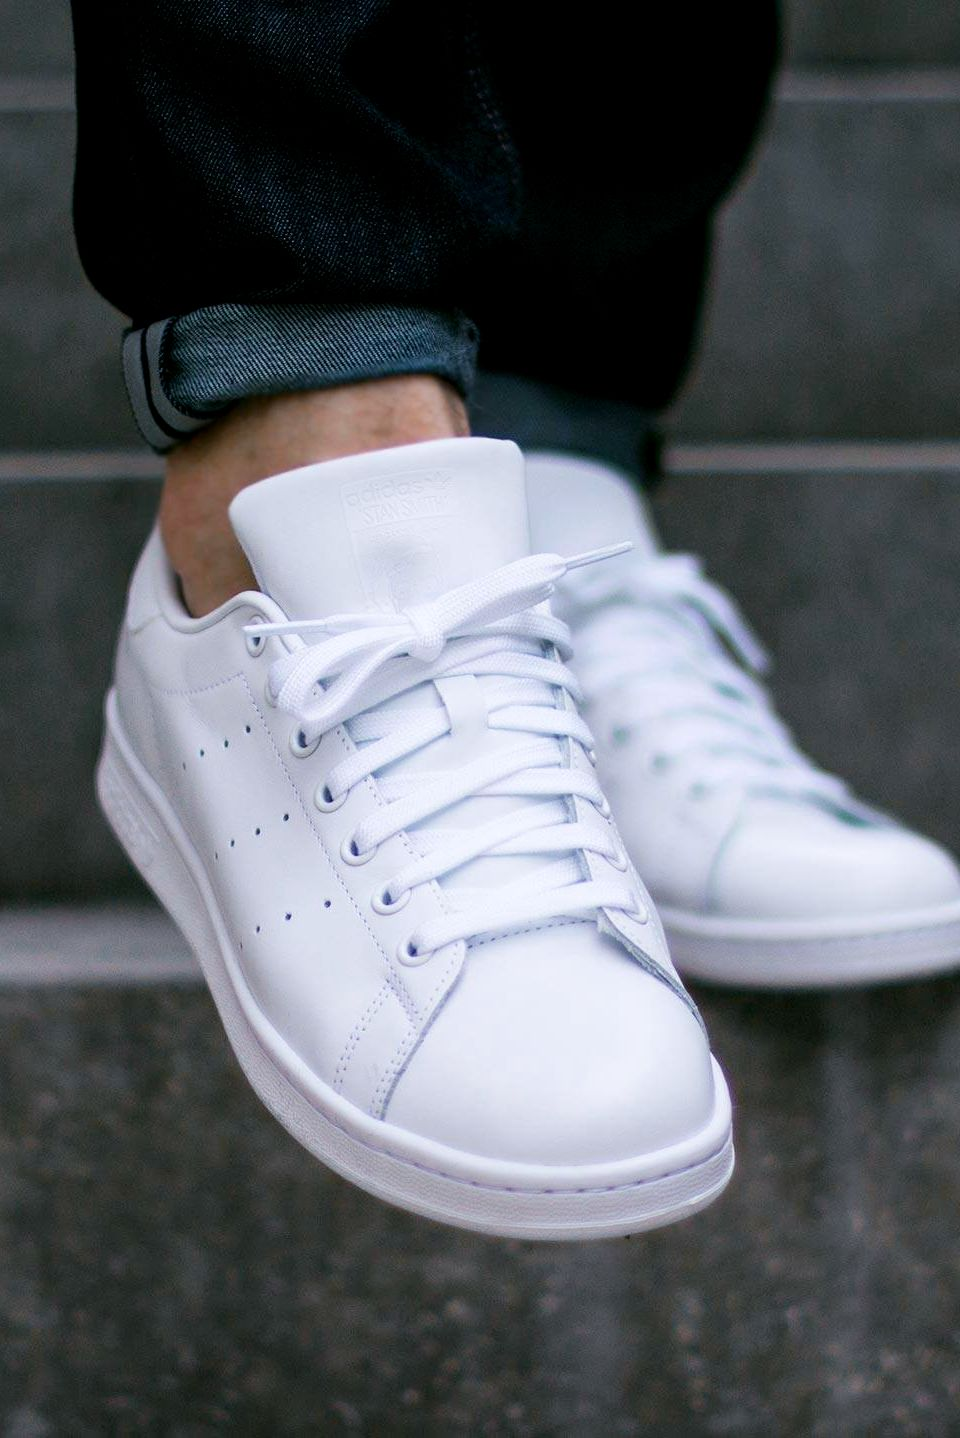 SPORTSWEAR ™®: SPORTSWEAR FIX: Adidas Stan Smith 'Triple White' .